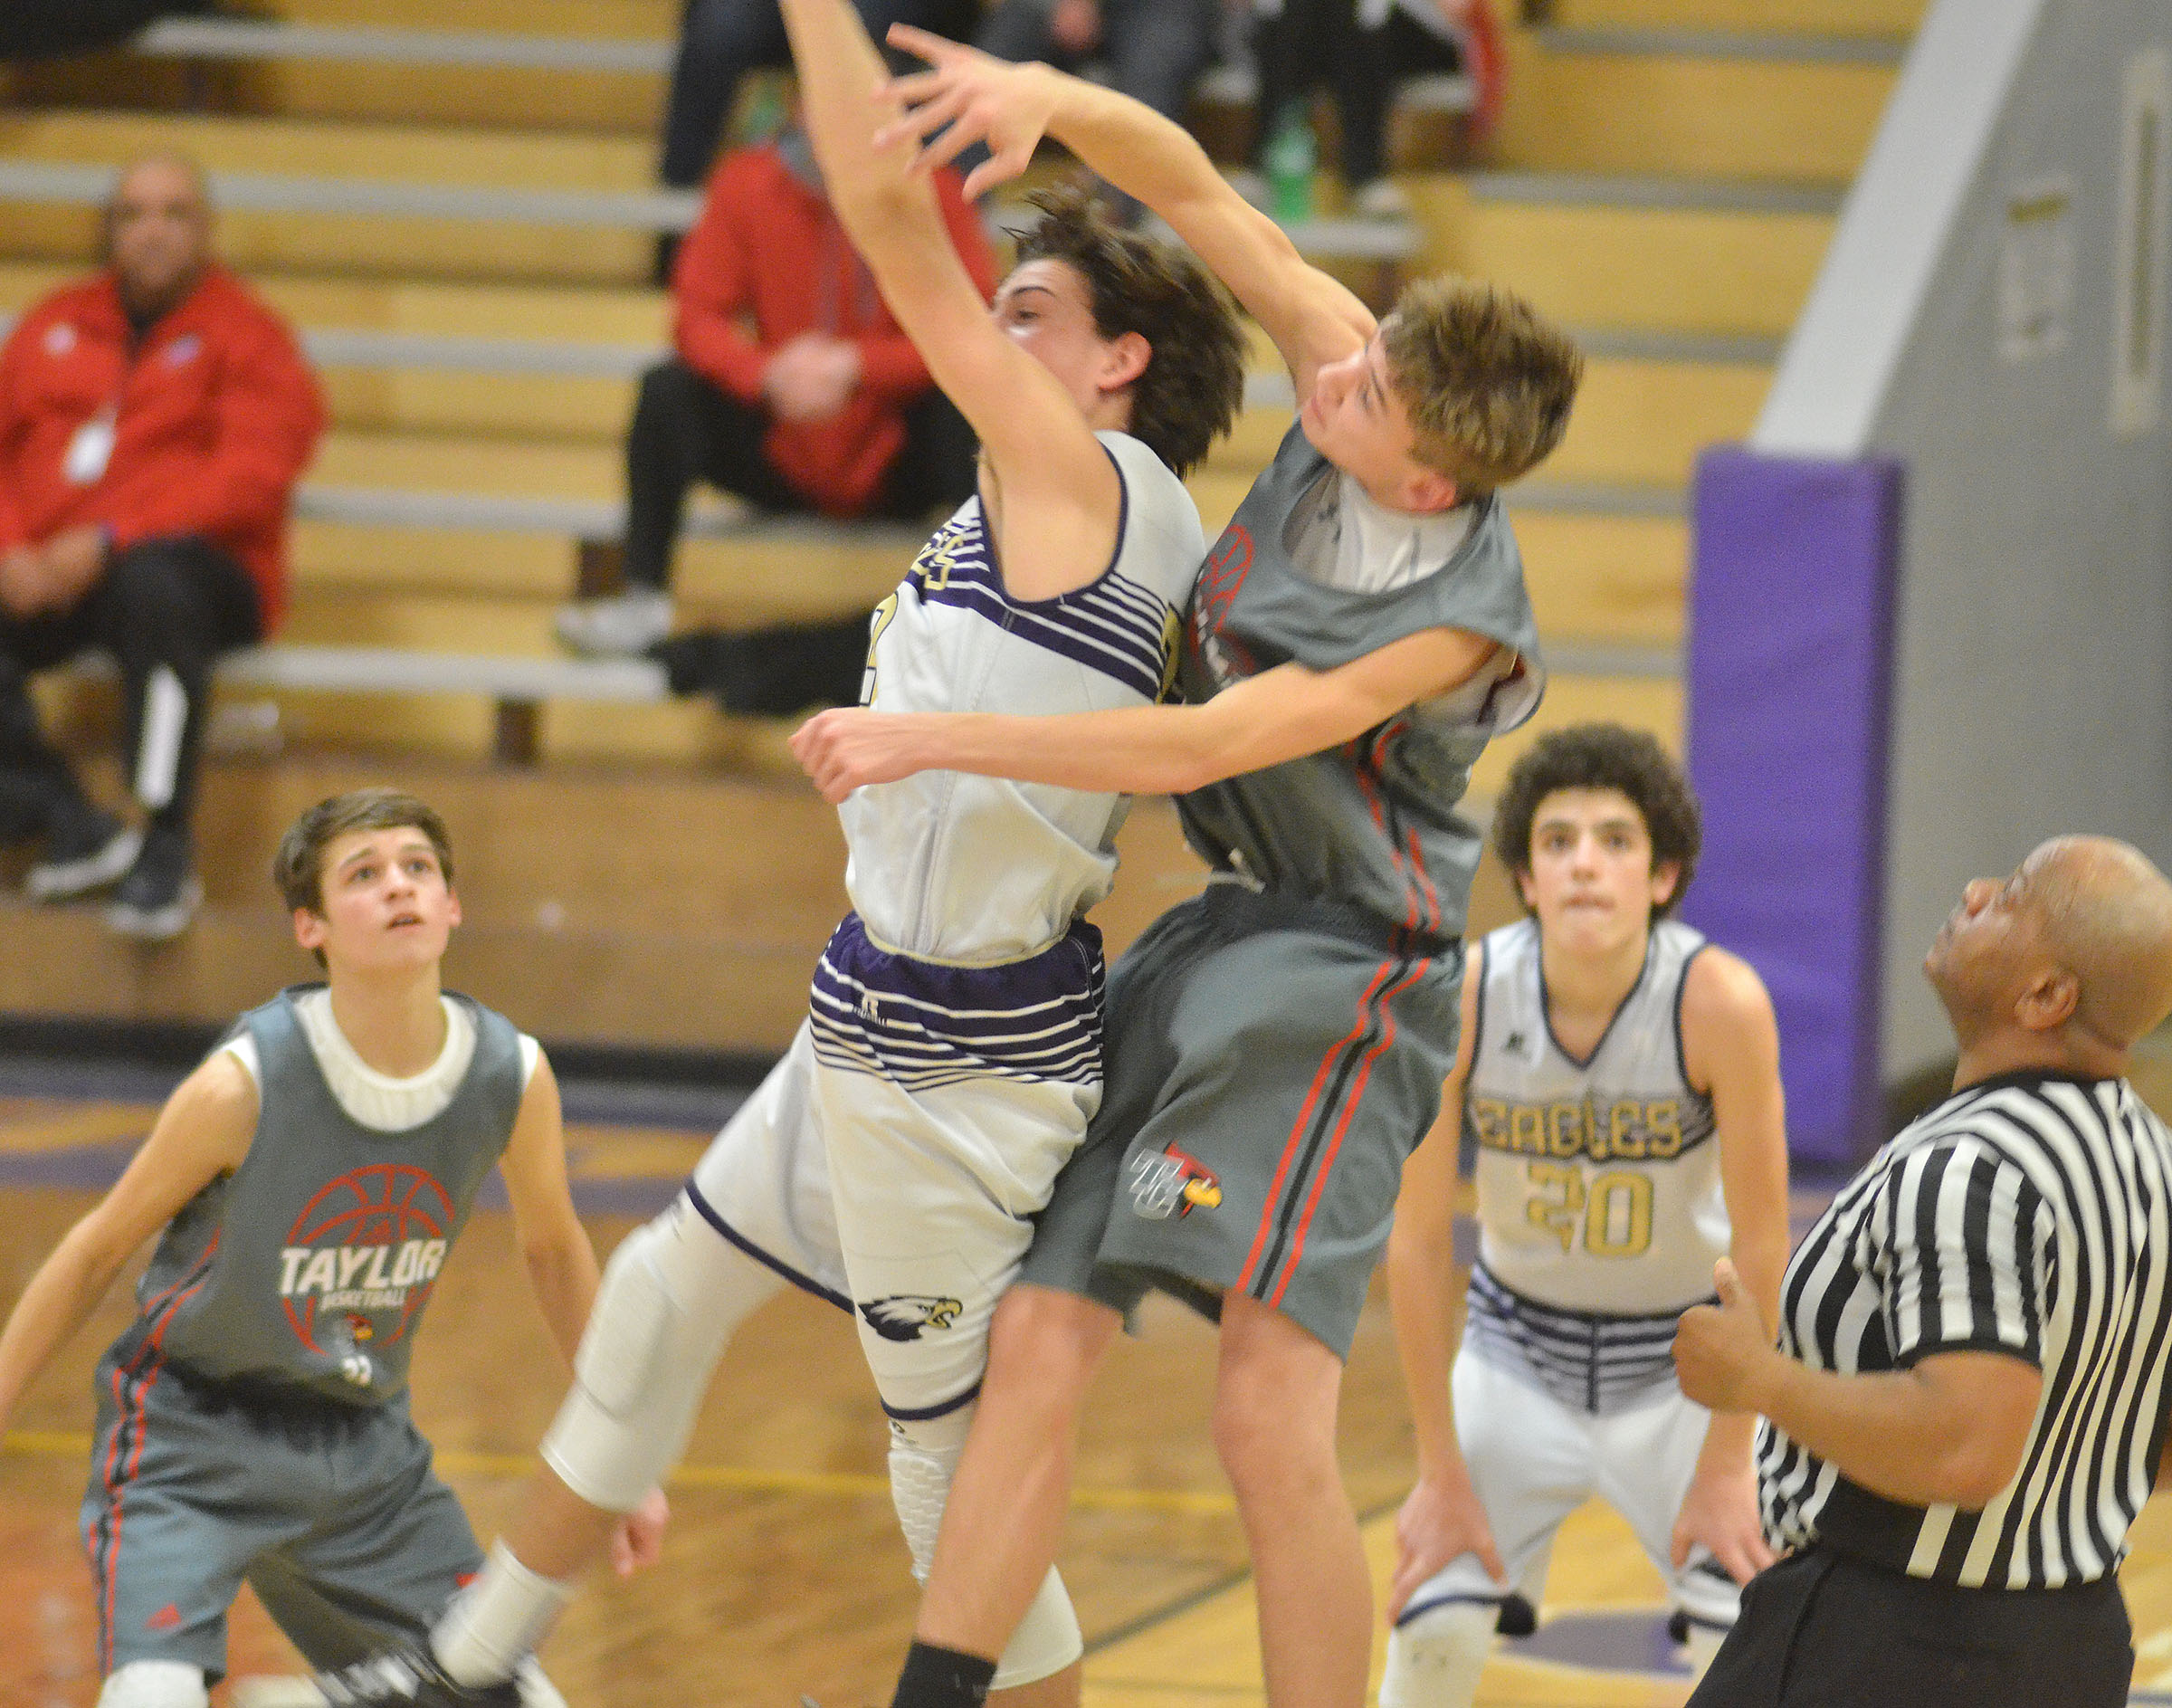 CMS eighth-grader John Orberson jumps for the ball as the overtime period begins.